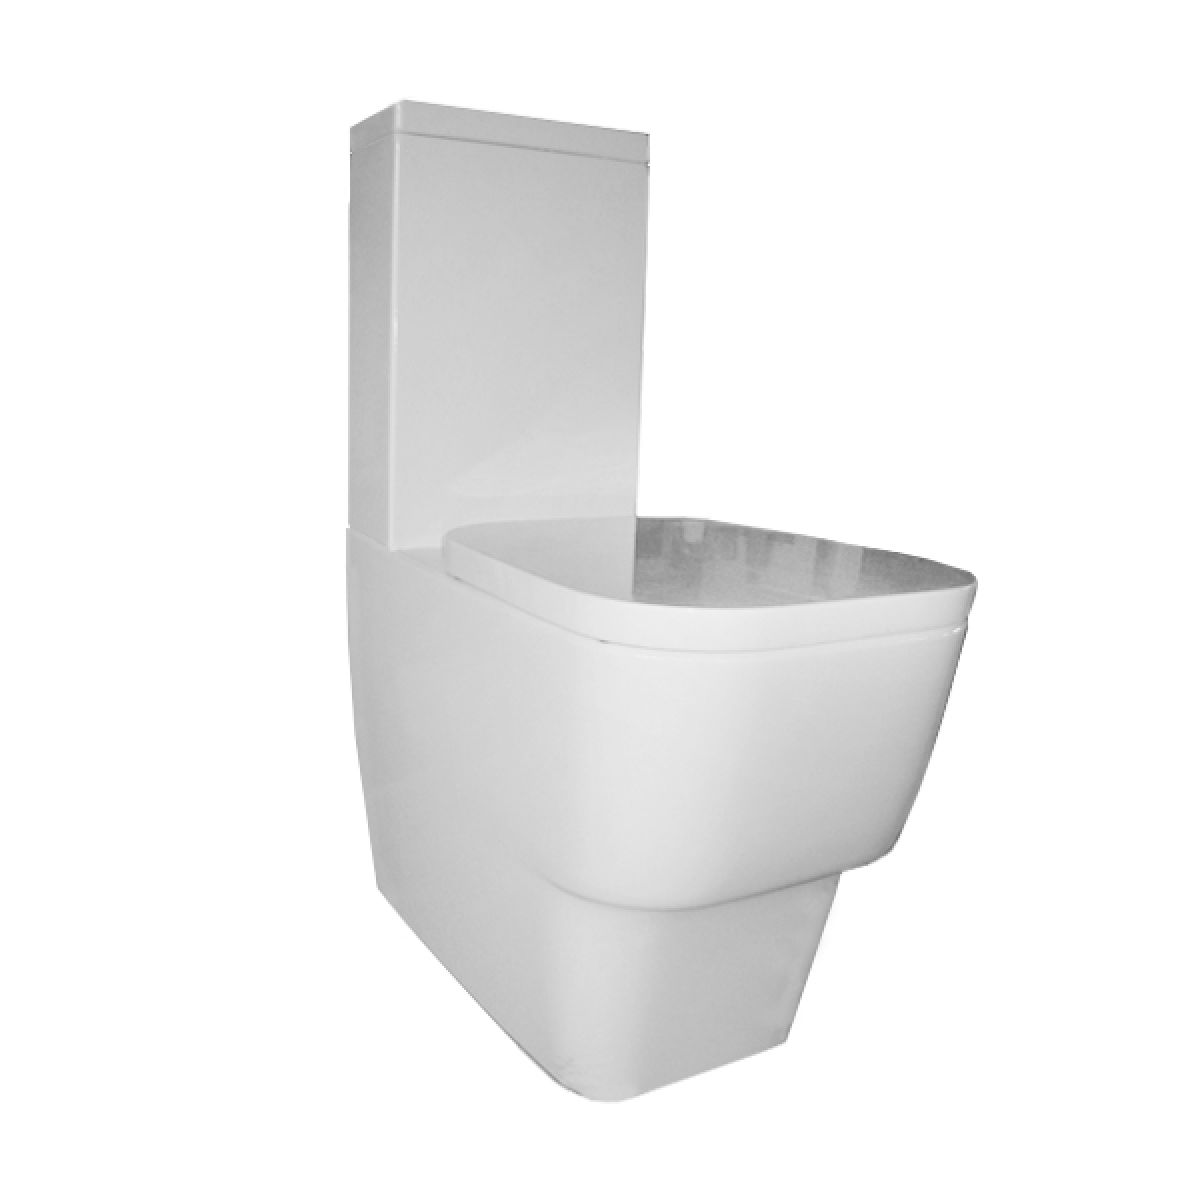 Frontline Cubix Close Coupled Toilet with Soft Close Seat